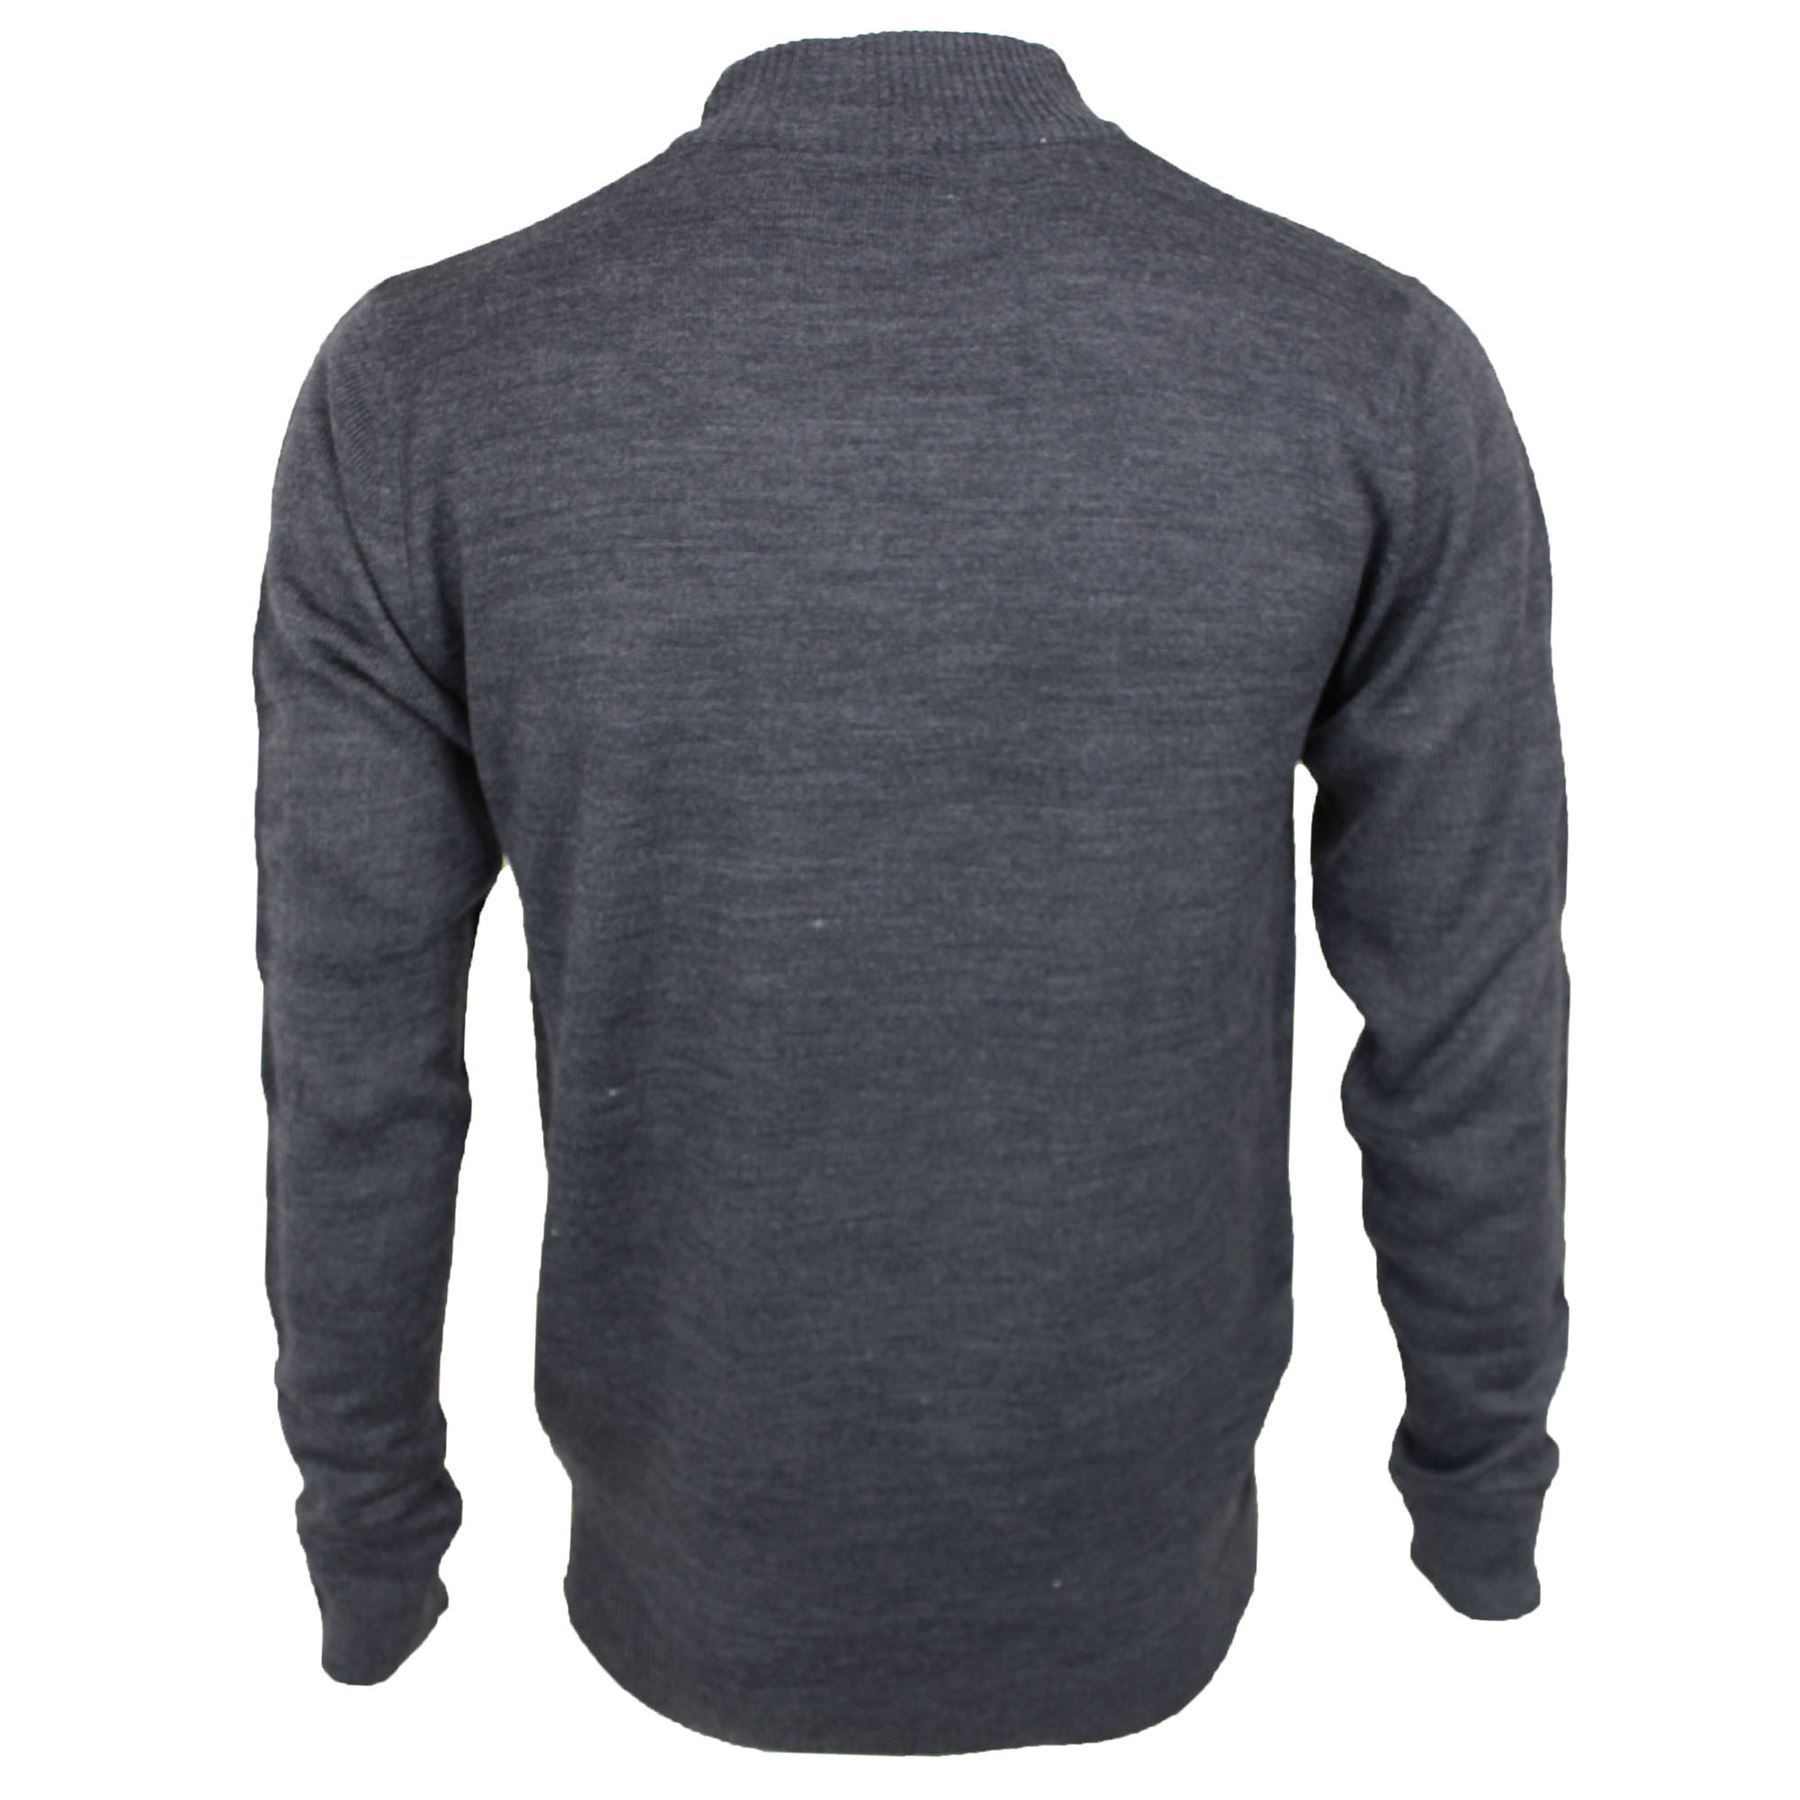 Mens Soul Star Thin Knit Turtle High Neck Long Sleeve Knitted Jumper Sweater Top